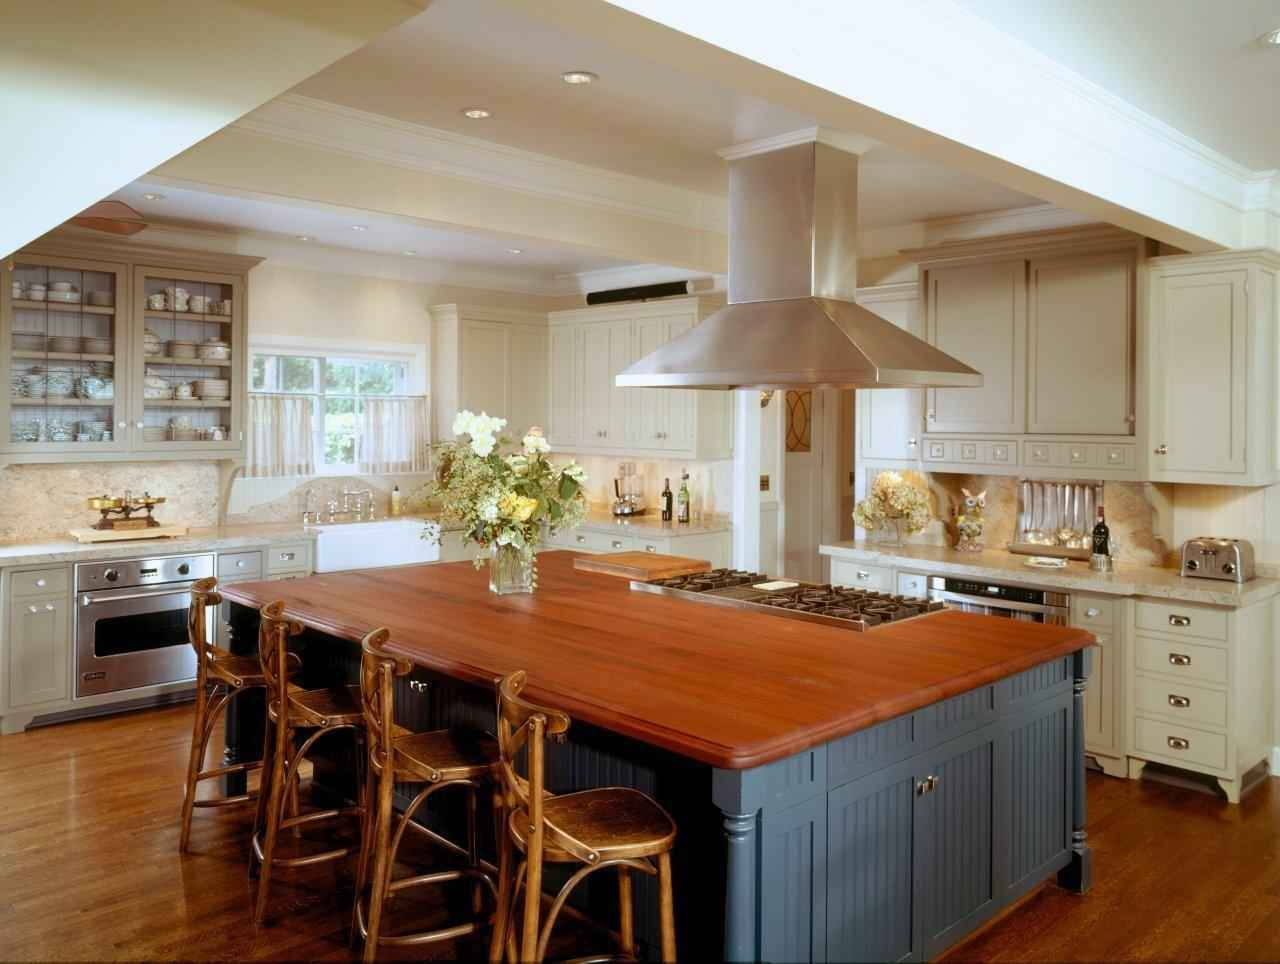 Inexpensive countertop ideas for your kitchens for Ideas for your kitchen